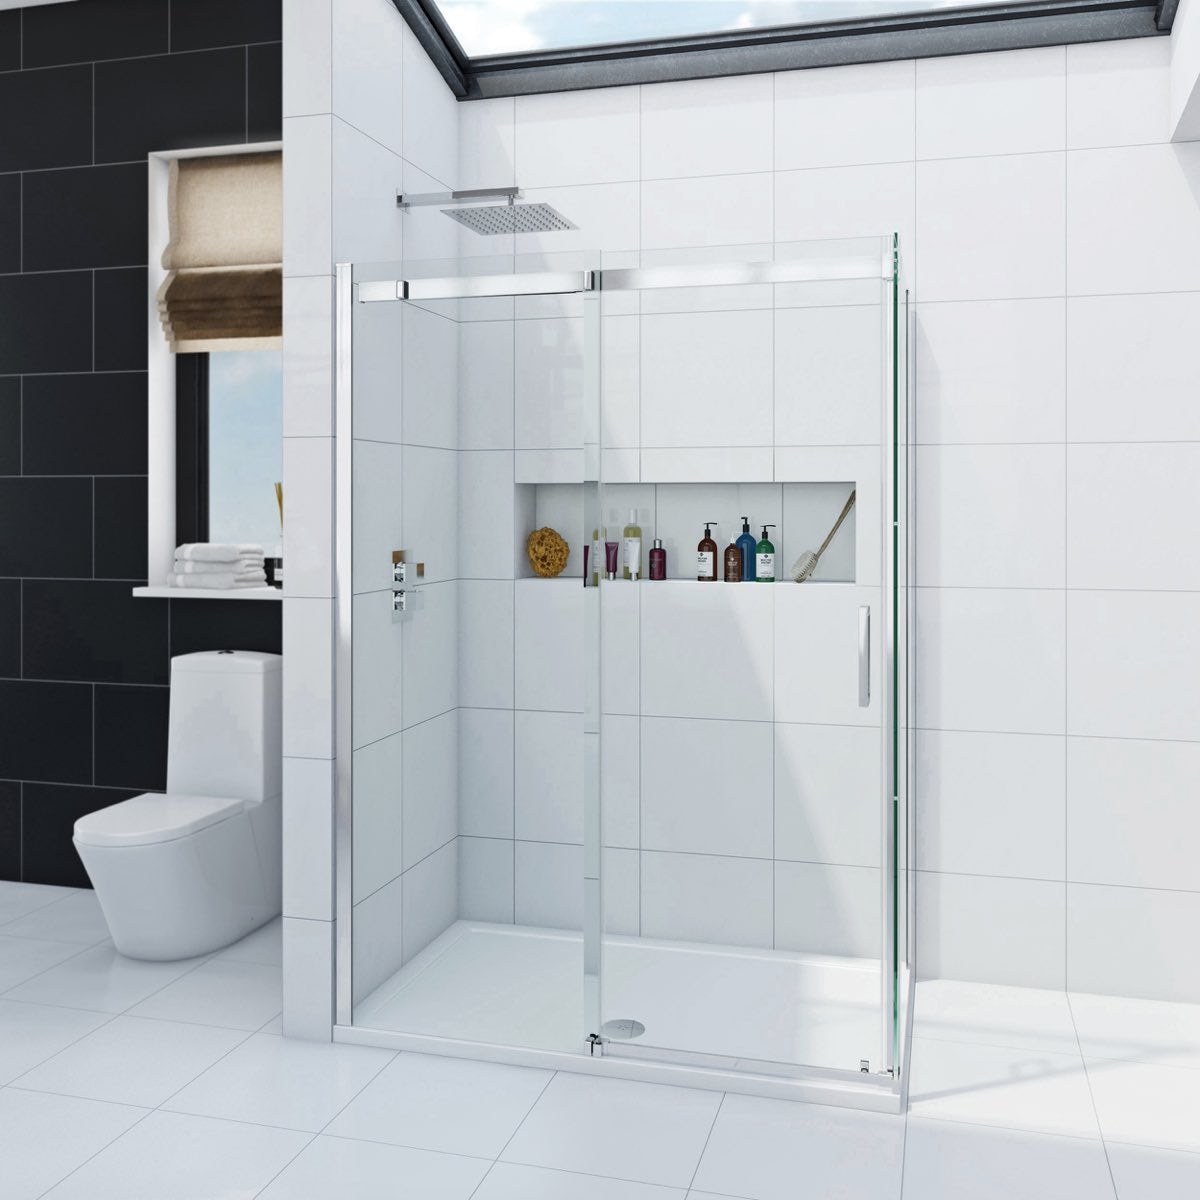 Attractive Priced To Clear Infiniti 8mm Sliding Shower Enclosure 1200x800